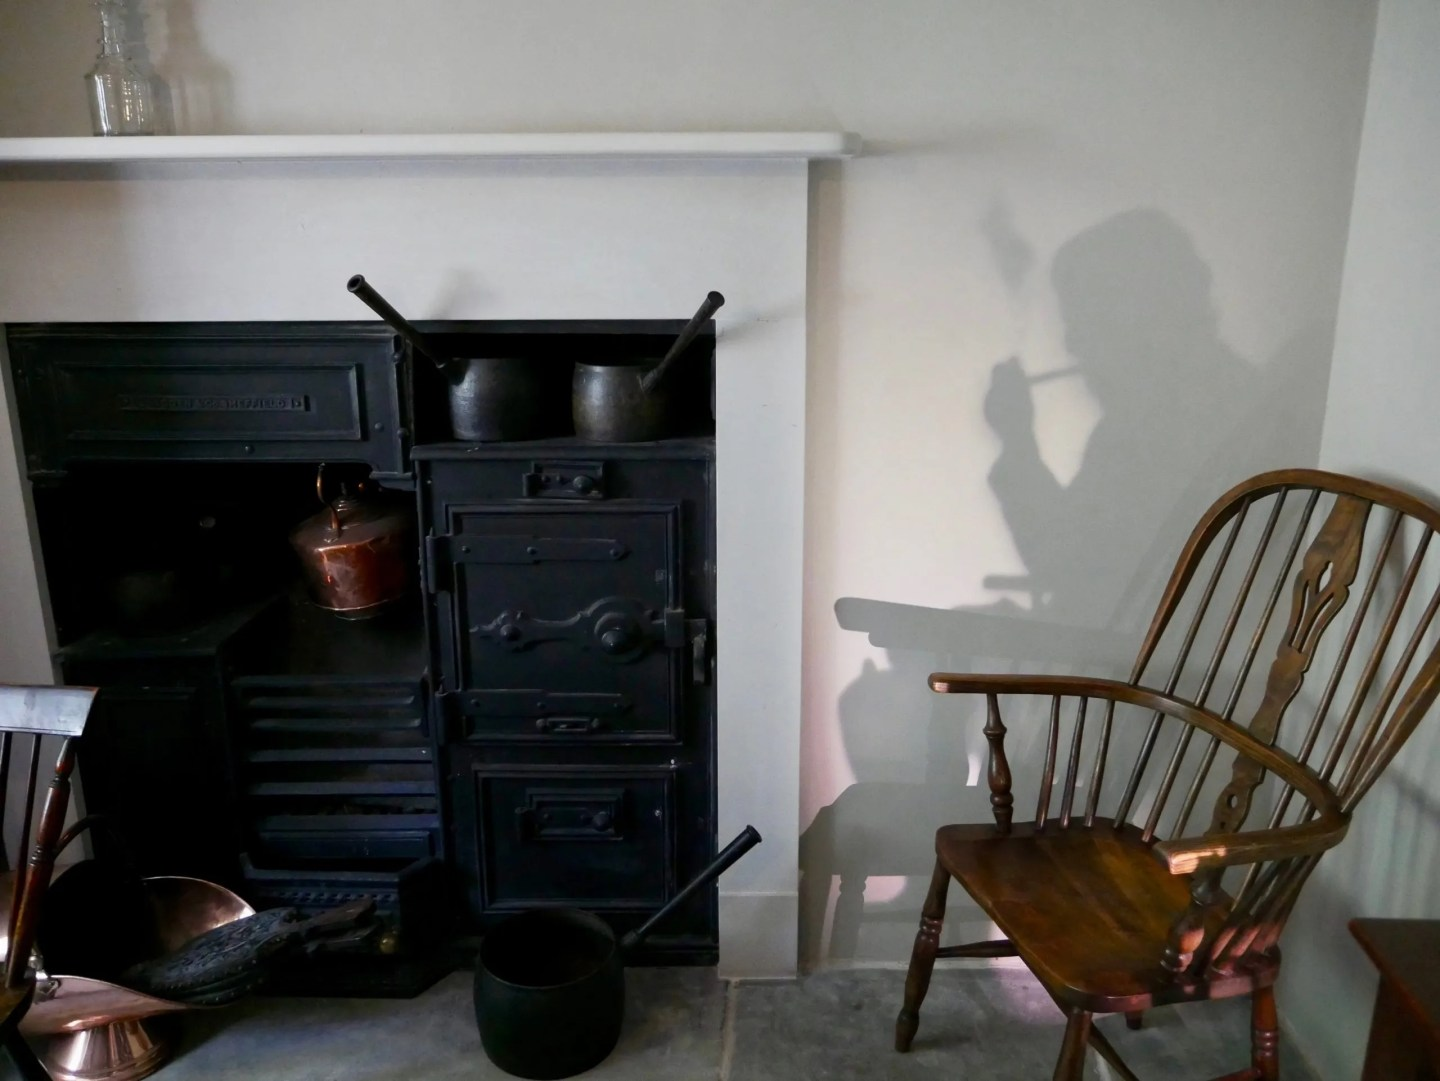 Shadow of Turner's father in Turner's House Kitchen